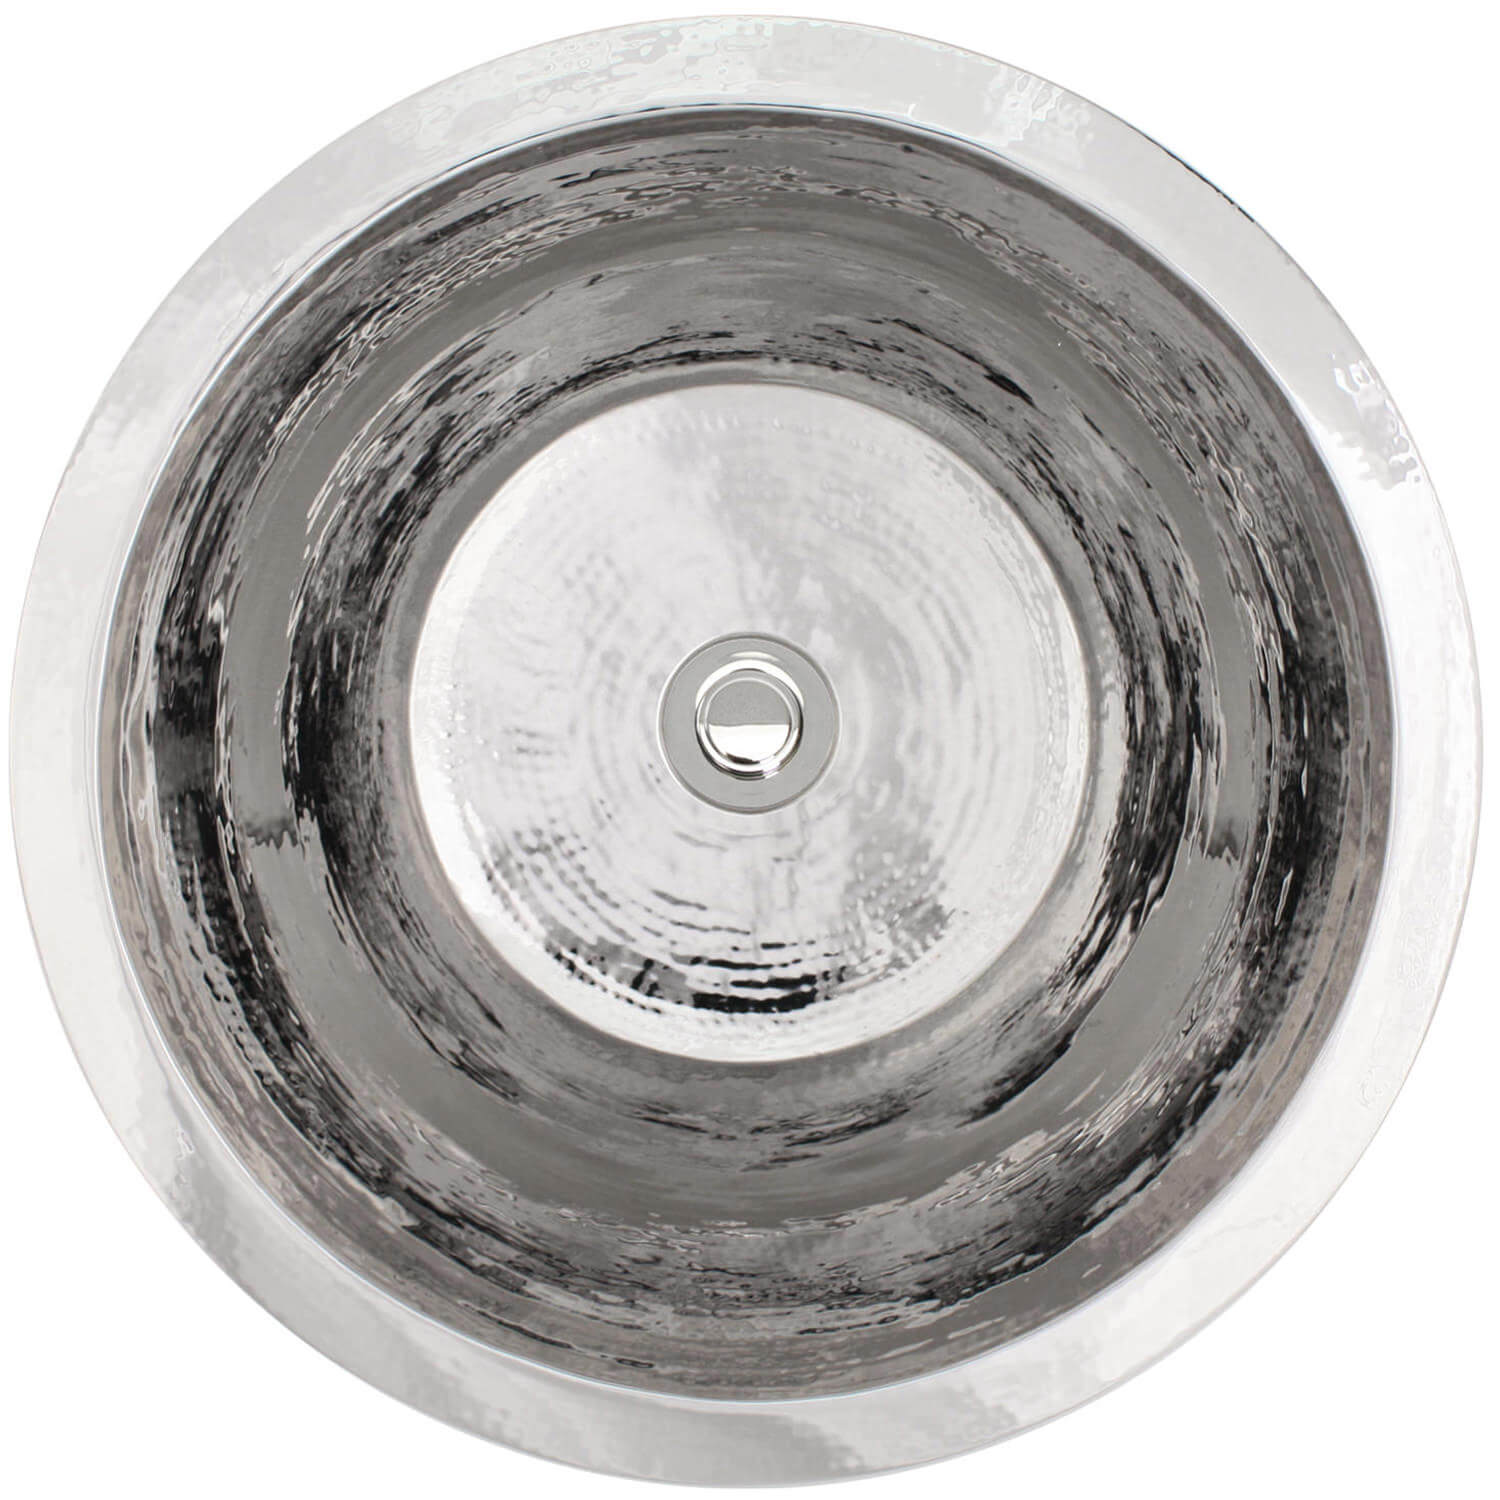 "Linkasink Bar Sinks - Linkasink C016 Small Flat Round Stainless Steel Sink - 2"" drain - 2 Finishes"